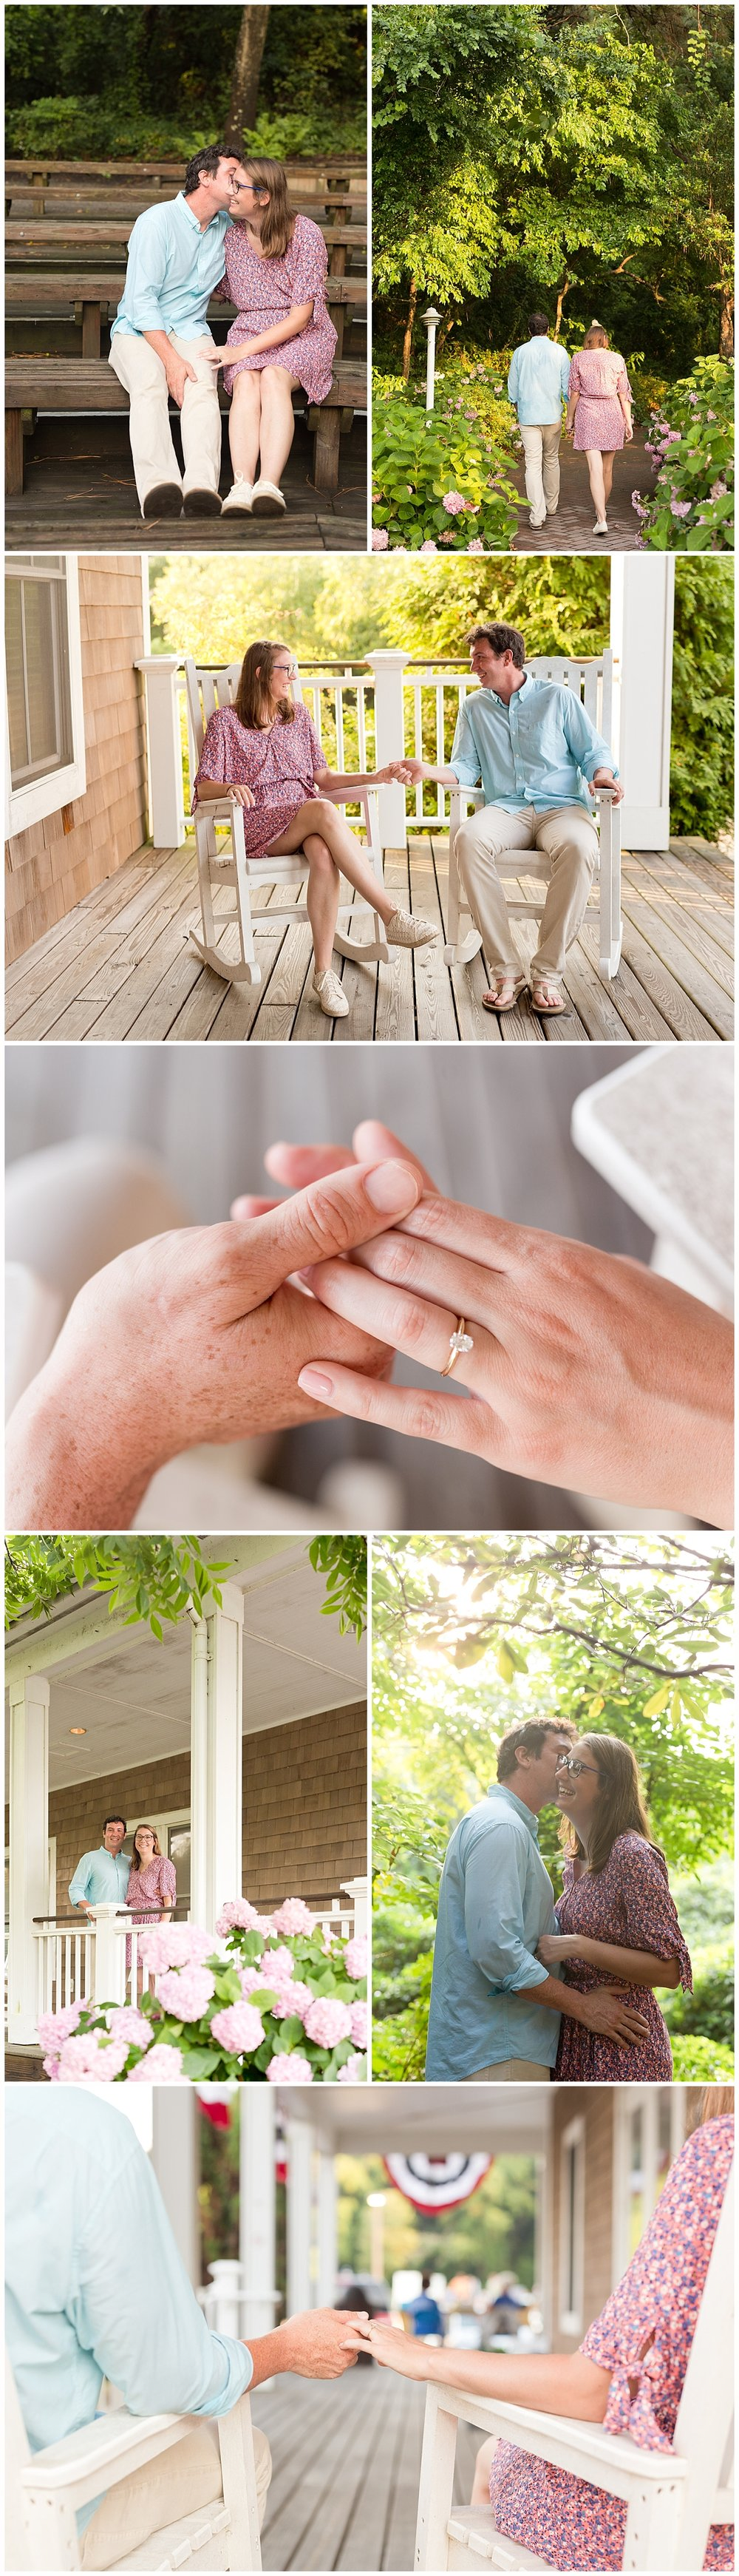 engagement photos with porch and rocking chairs - Ocean Springs, MS wedding photographer